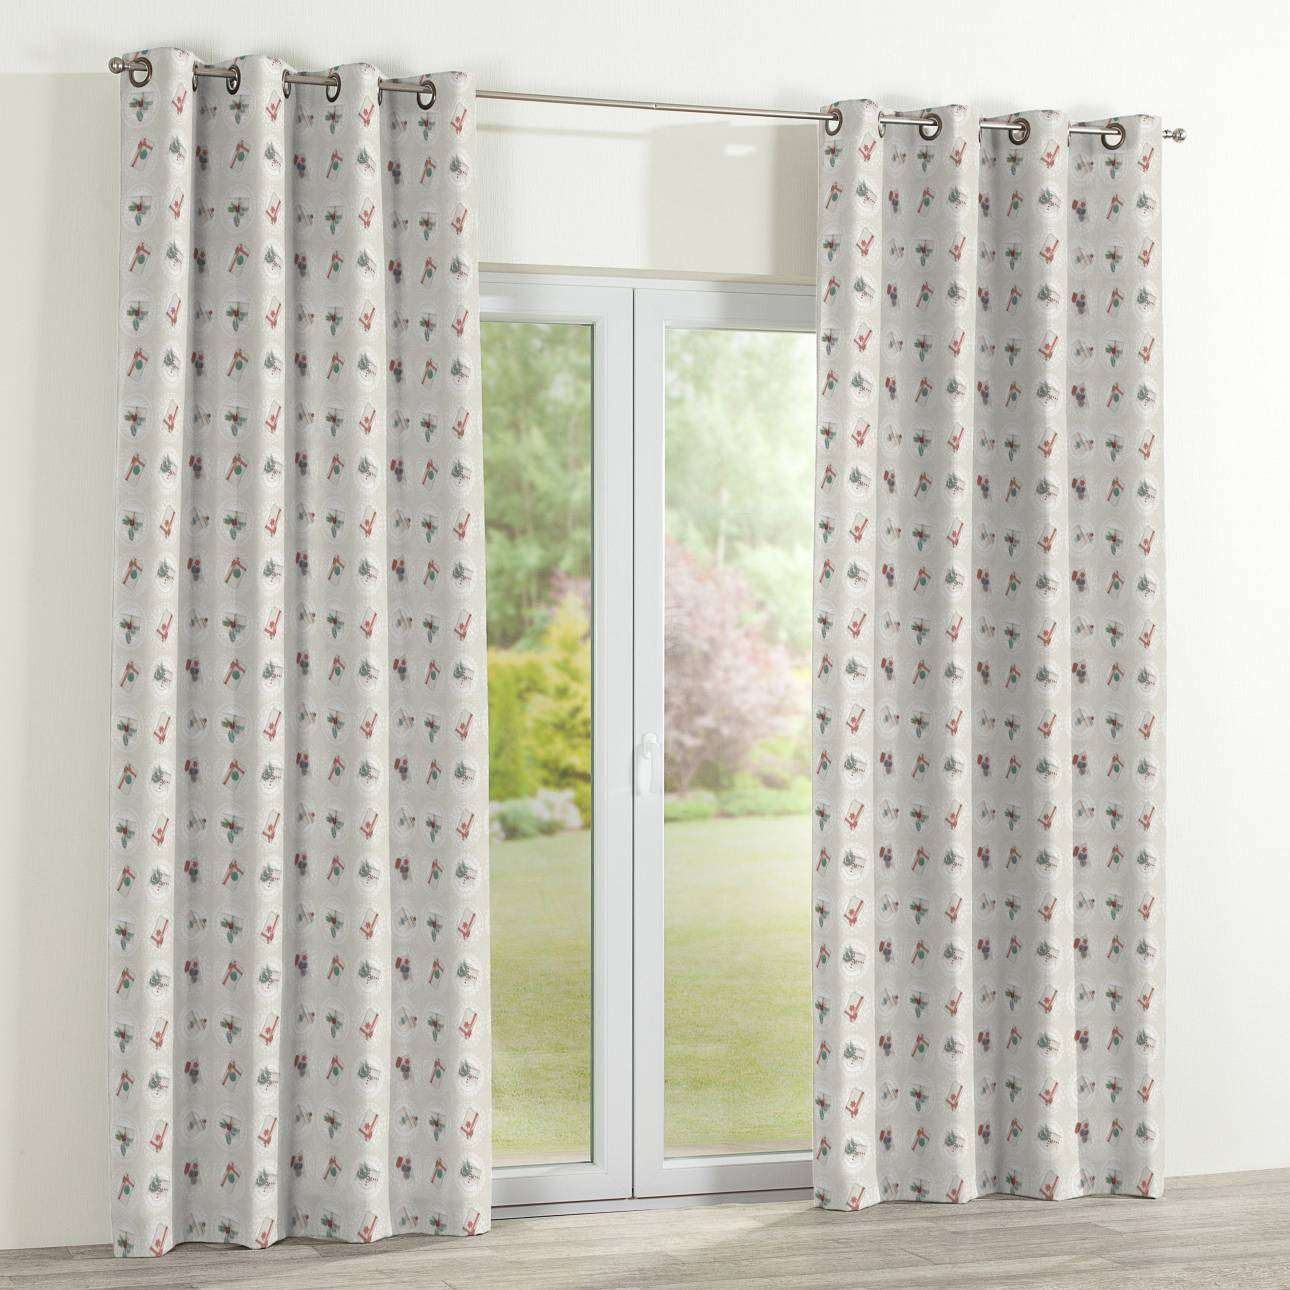 Eyelet curtains 130 x 260 cm (51 x 102 inch) in collection Christmas , fabric: 629-30